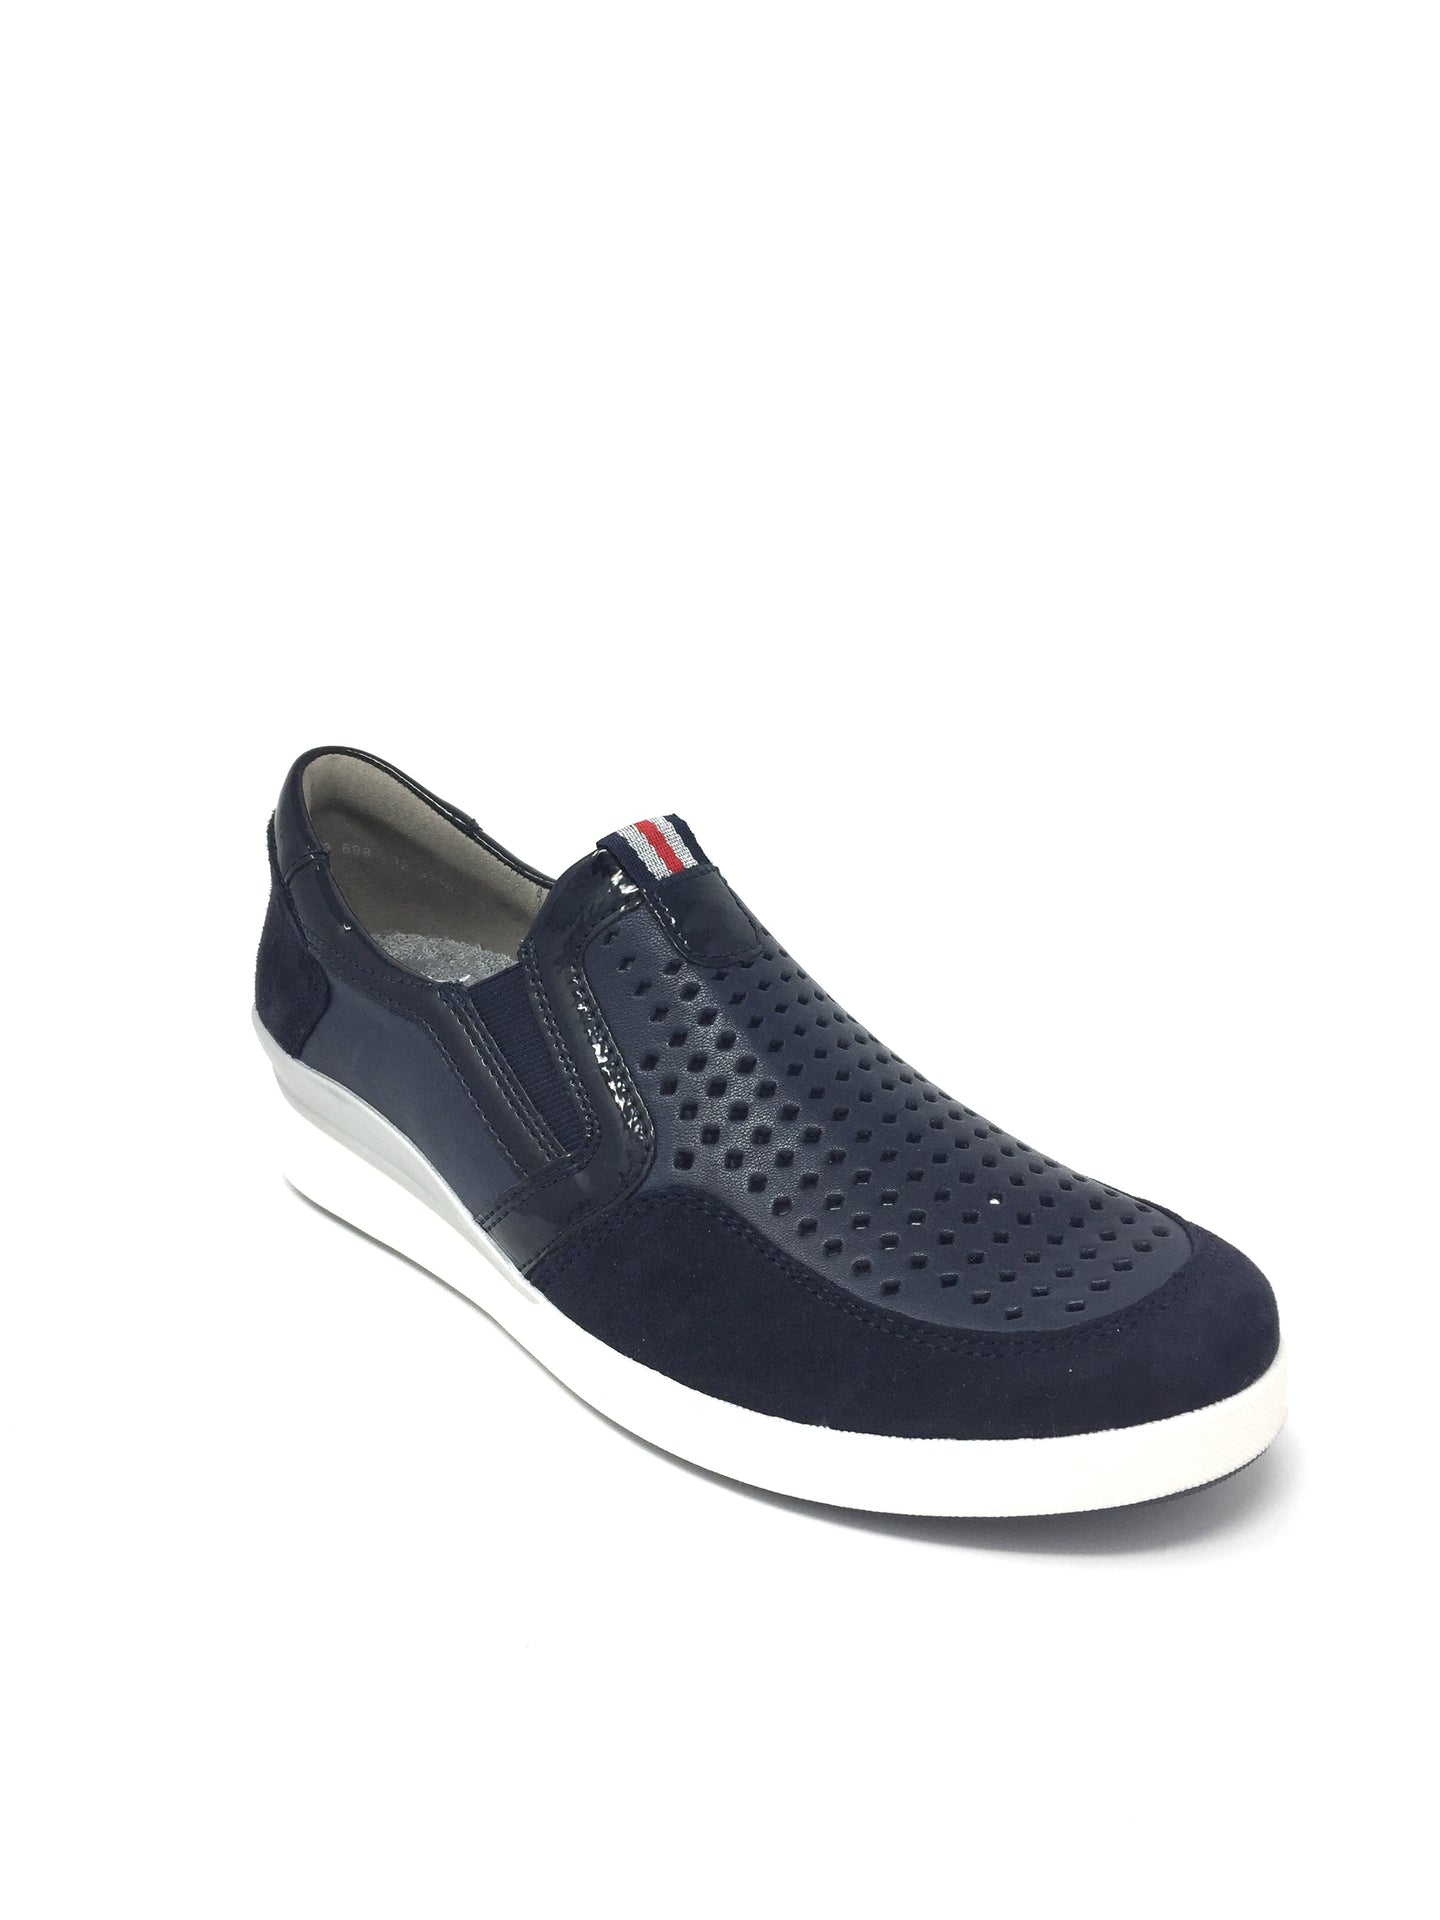 1233362 Ara Ladies Flat Walking Shoe with punched detail for sale online Ireland navy